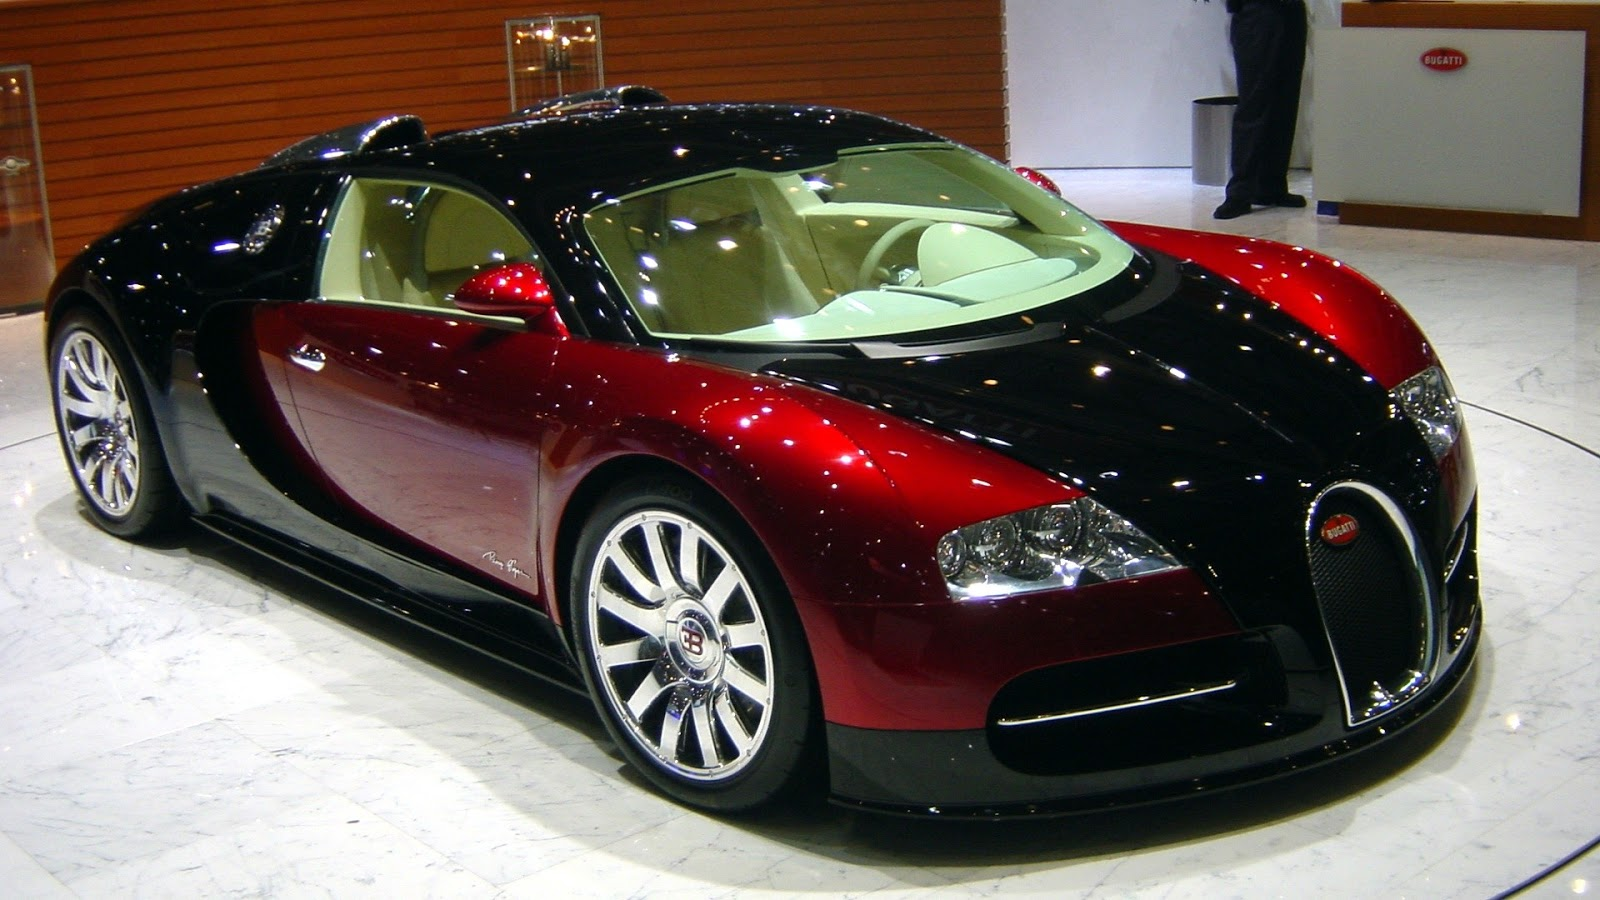 Hd wallpaper you need - Bugatti Veyron Salon Hd Wallpaper We Hope You Can Find What You Need Here If You Wanna Have It As Yours Please Right Click The Images Of Bugatti Veyron